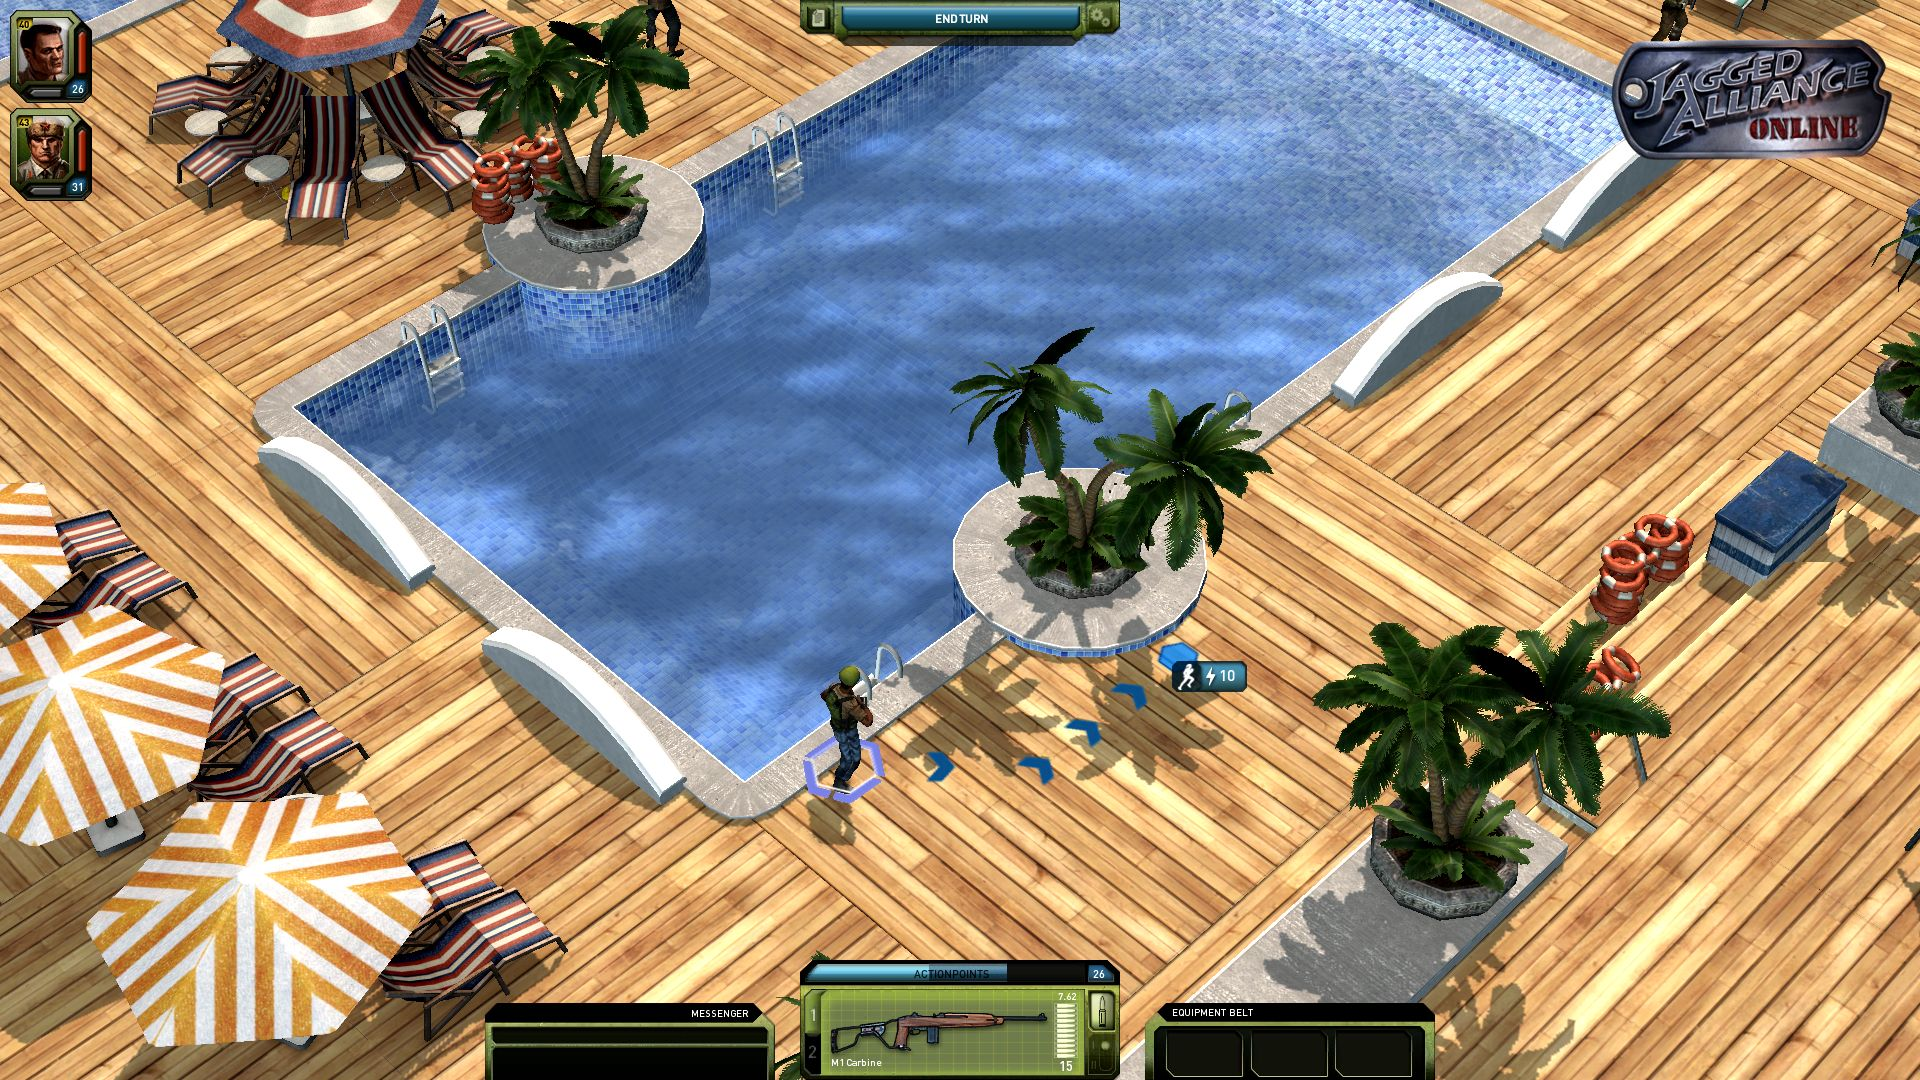 Jagged Alliance Online (4)